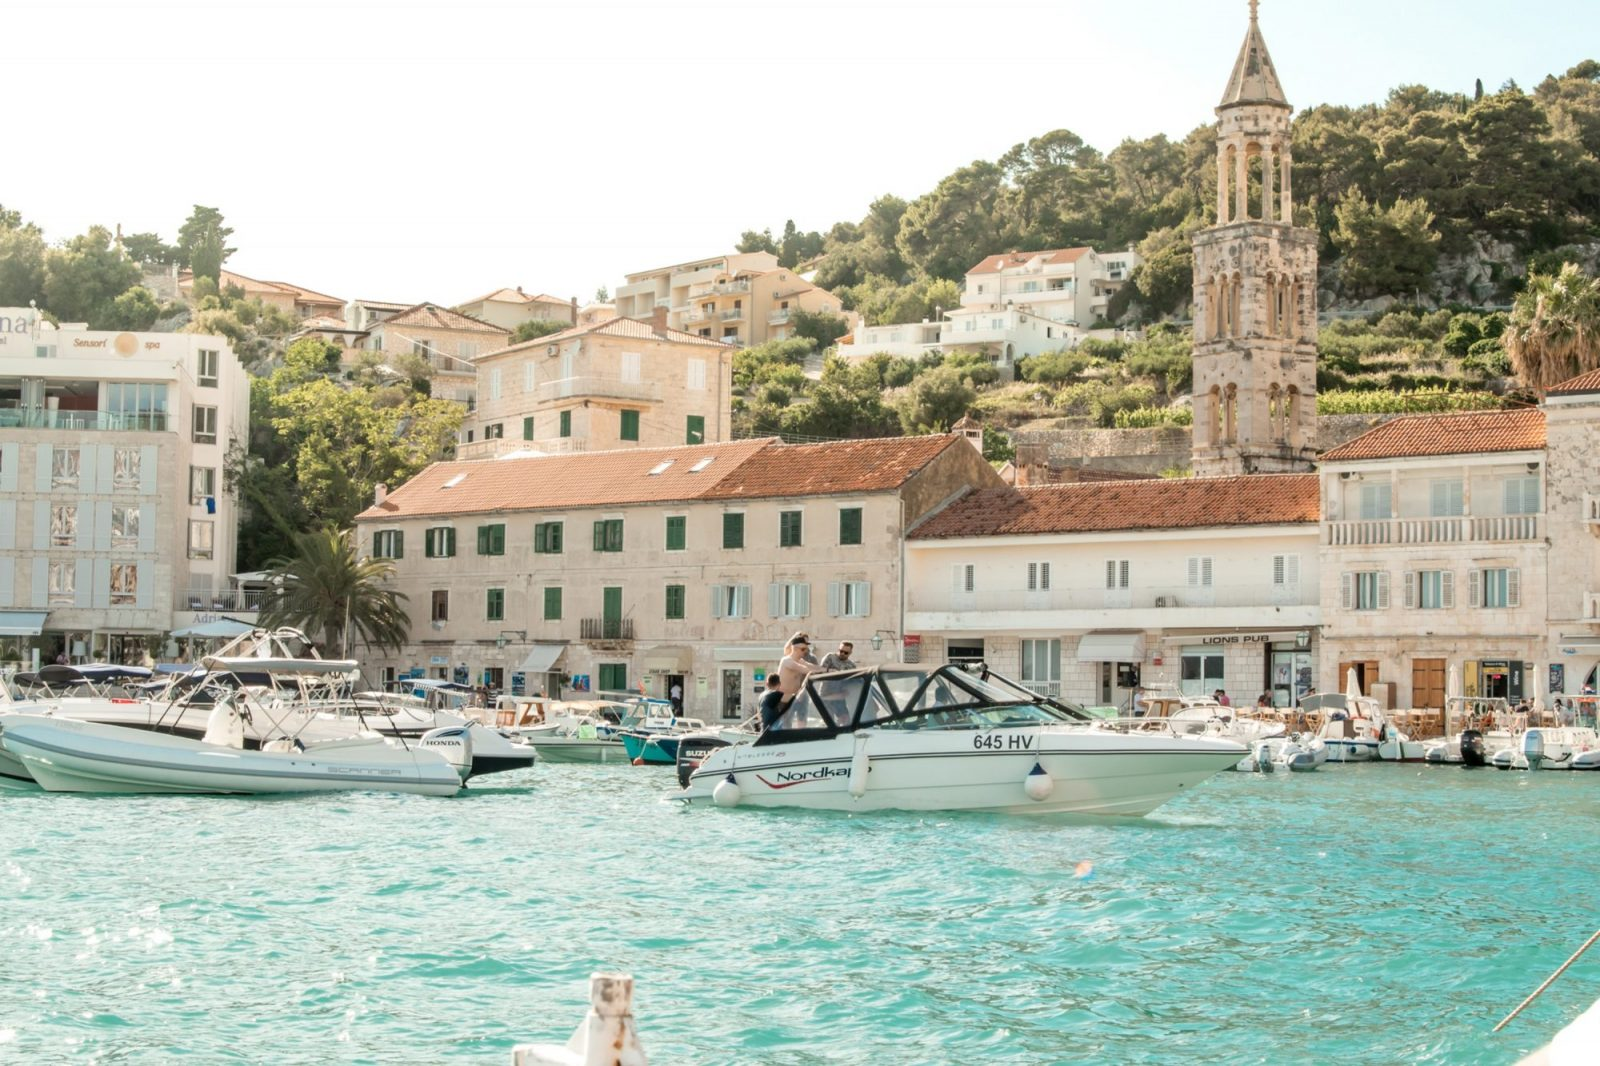 Best Things to Do in Croatia - Hvar